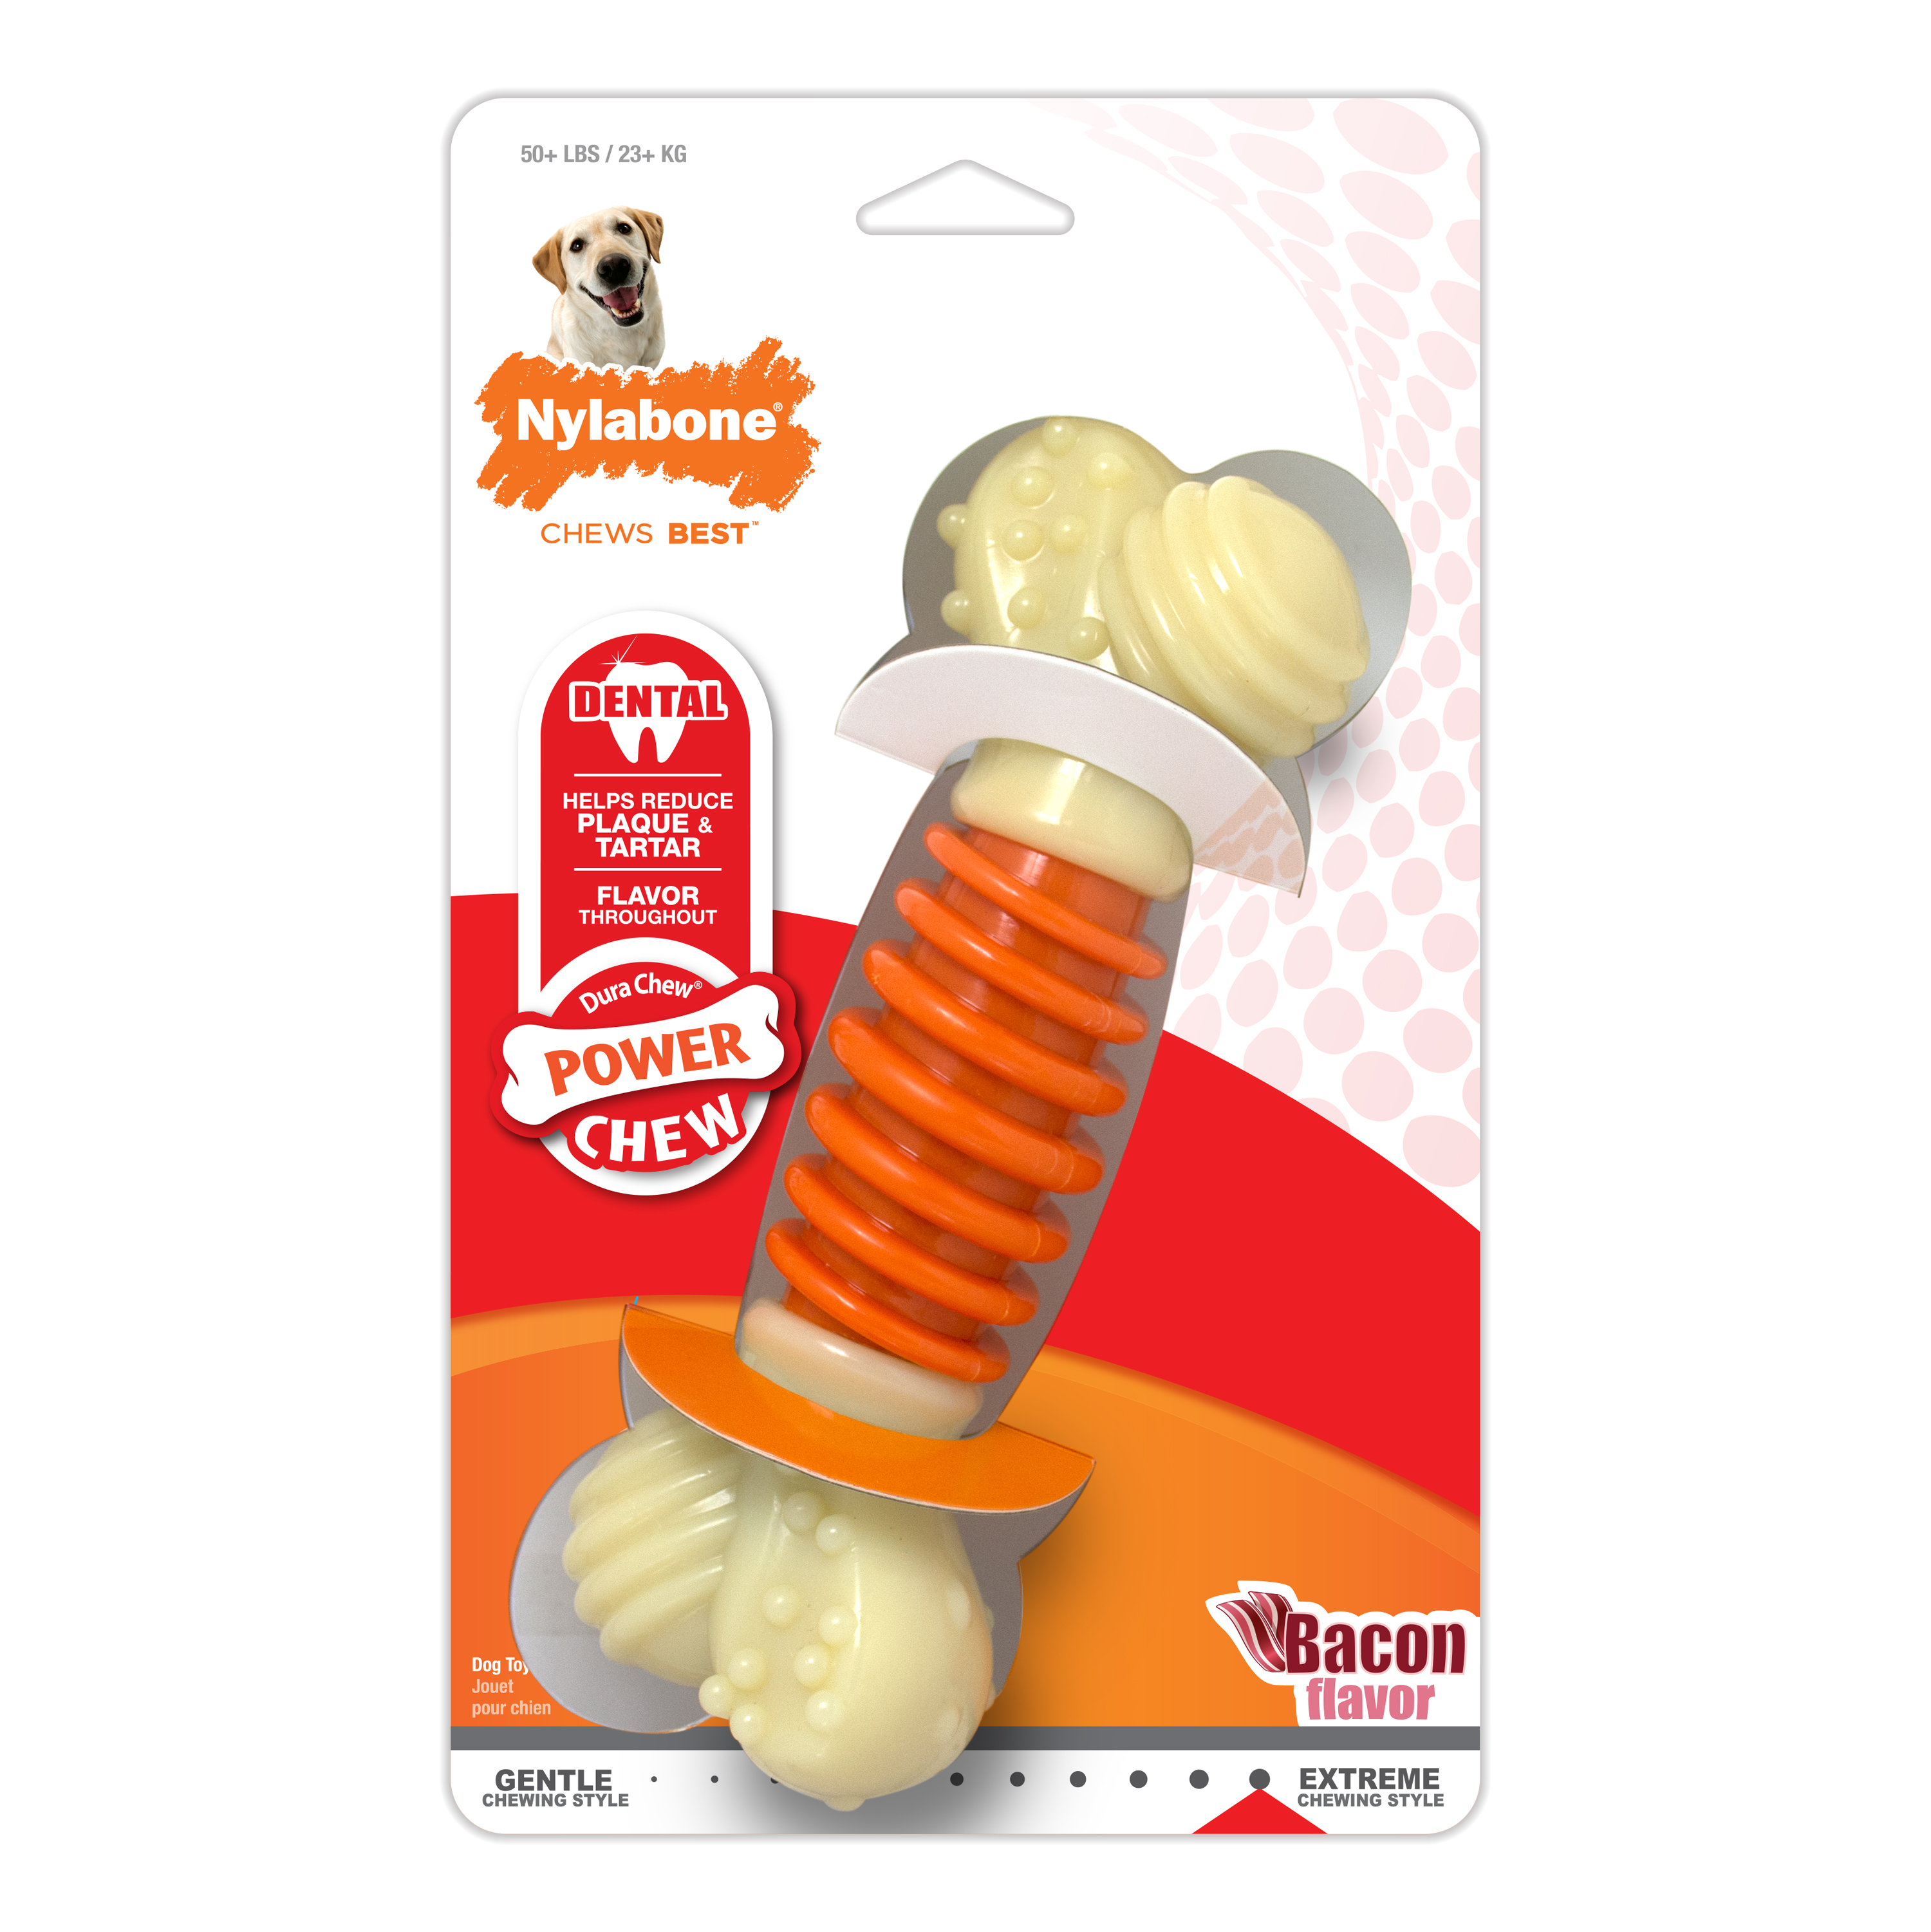 Nylabone Pro Action Dog Bone Dental Chew Toy, Bacon, X-Large